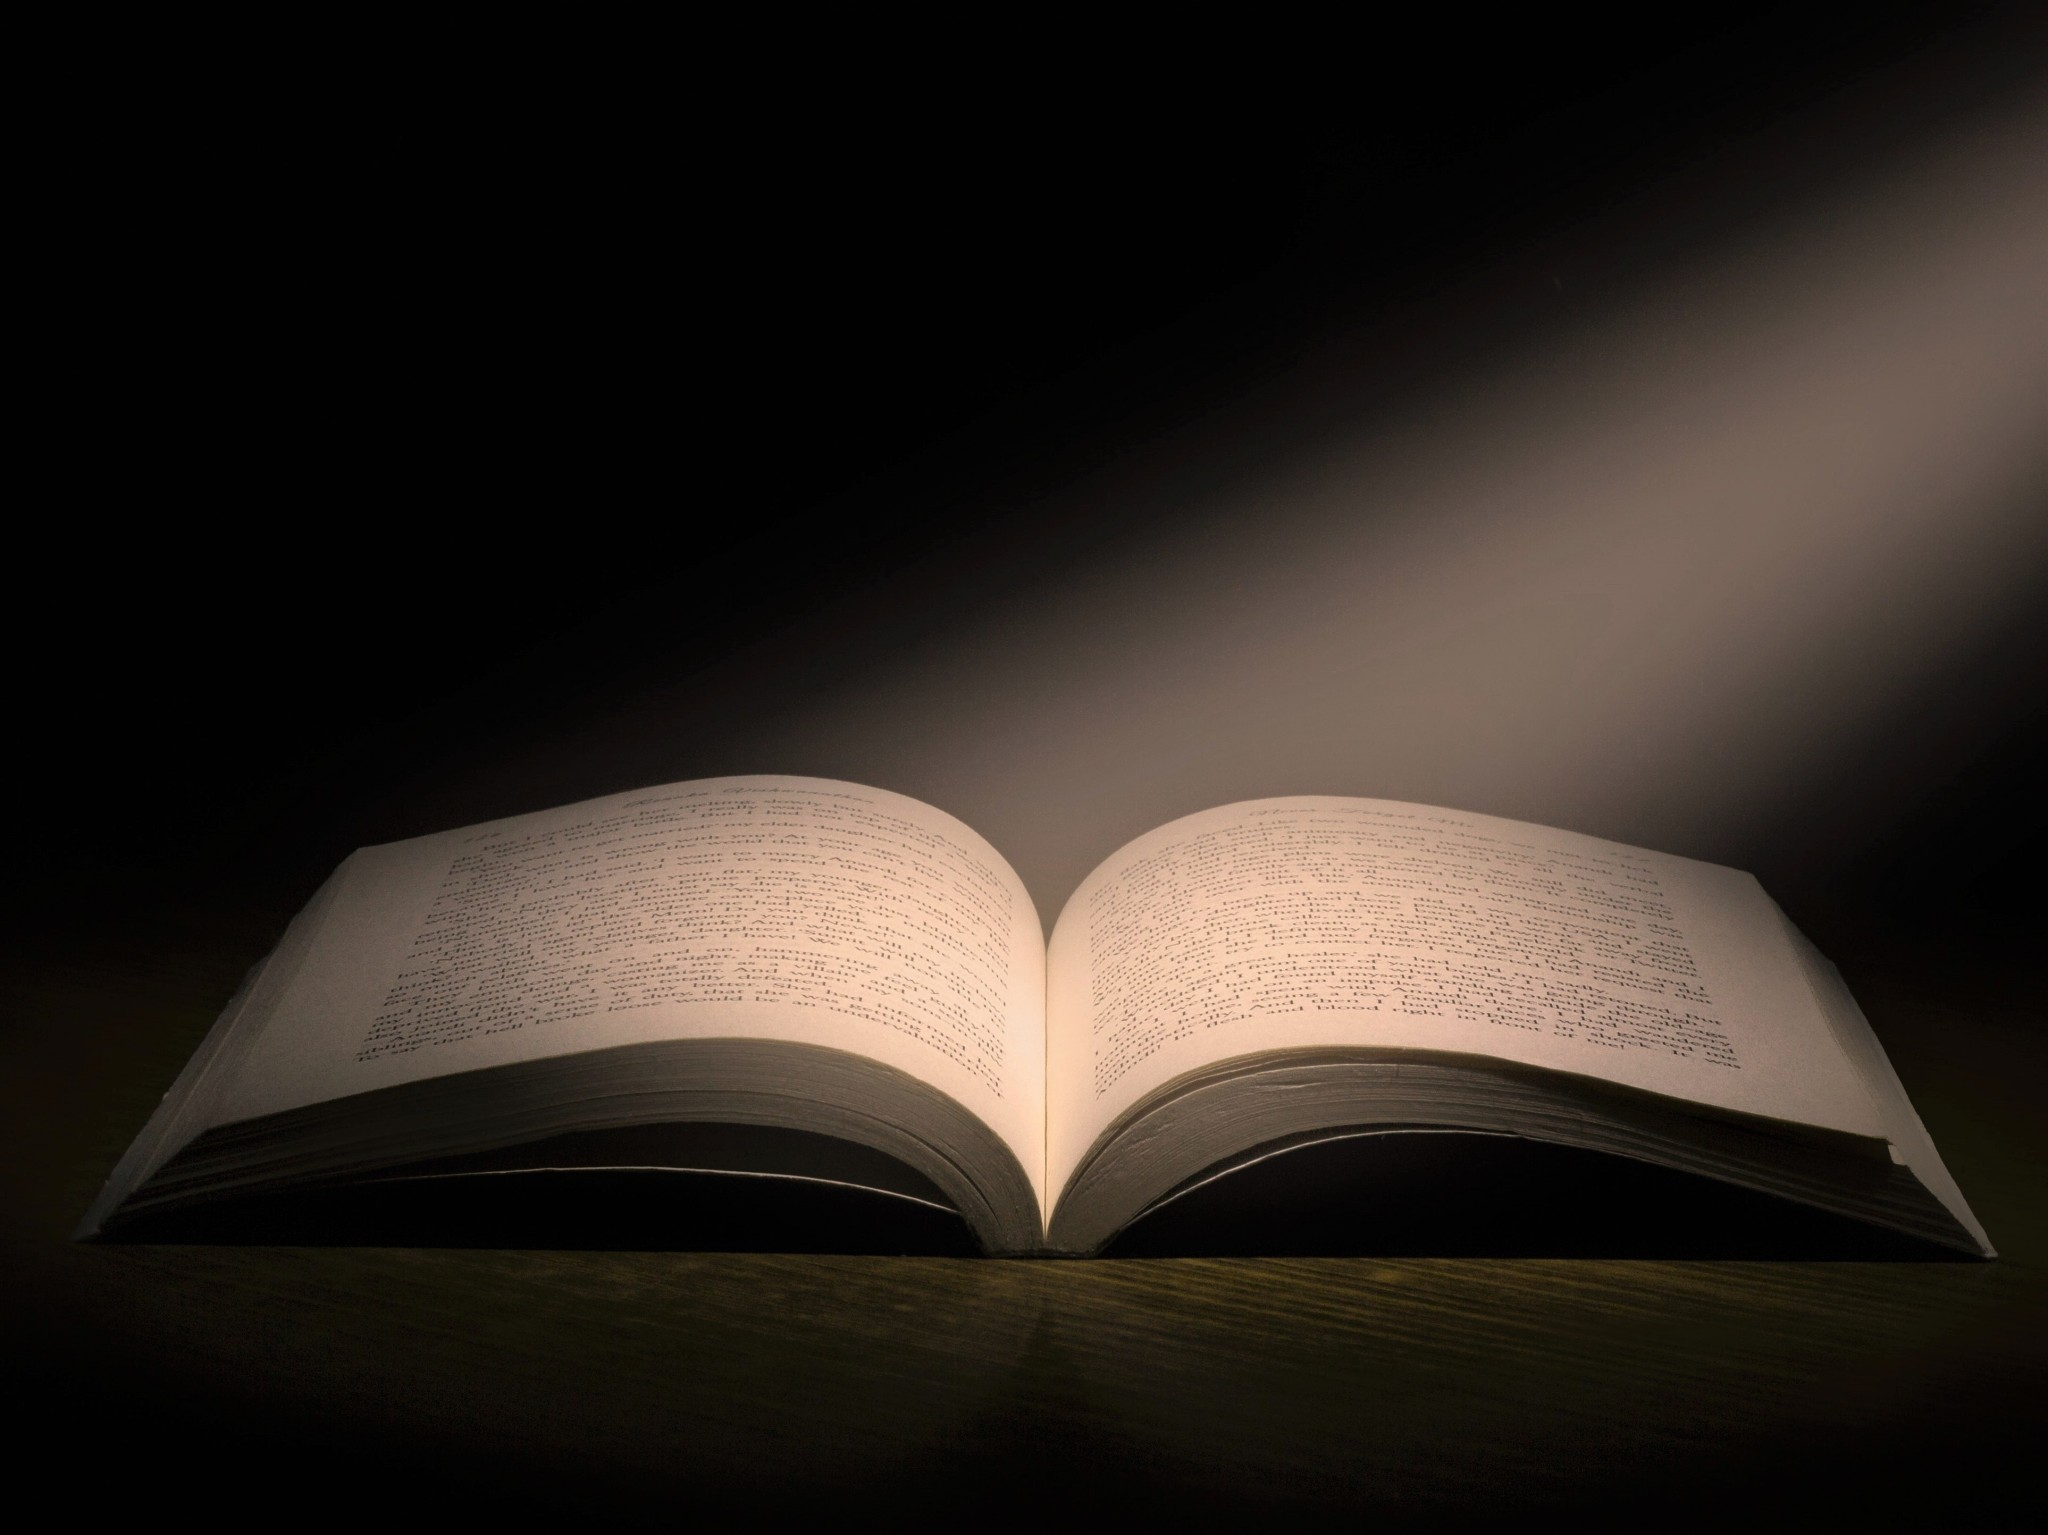 Open pages of a large book highlighted  by a shaft of light representing wisdom, knowledge, learning, and enlightenment.